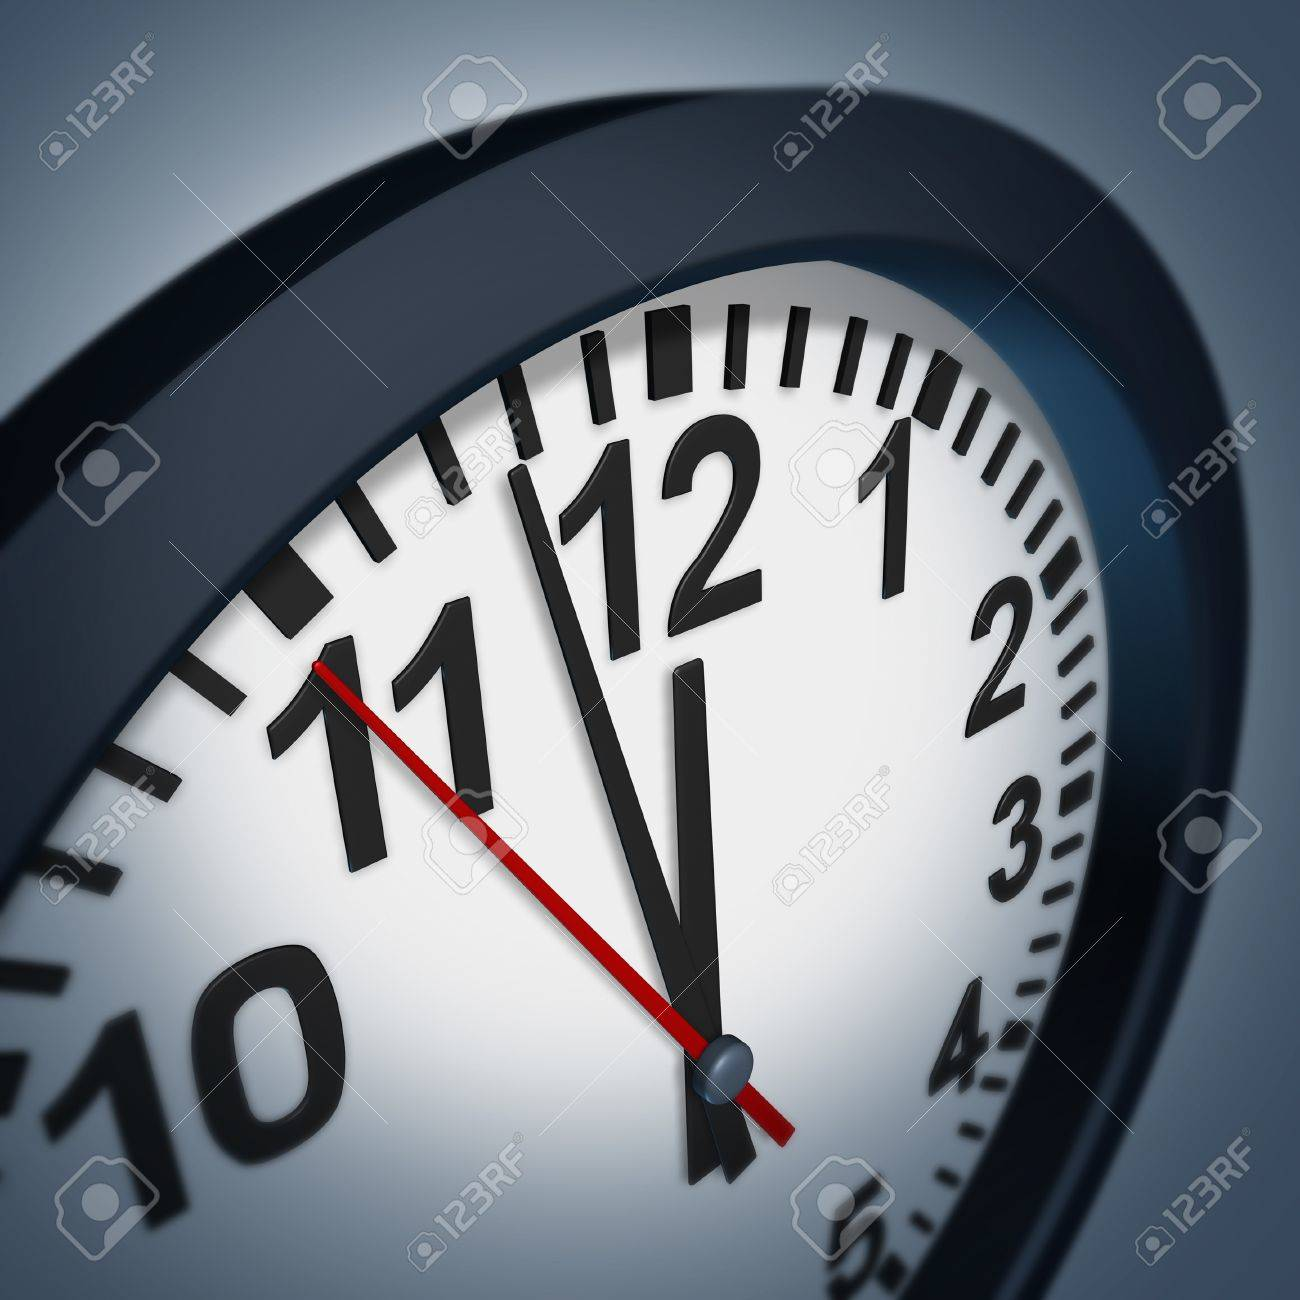 Urgent deadline symbol with a wall clock representing the stress urgent deadline symbol with a wall clock representing the stress of time constraints in business and buycottarizona